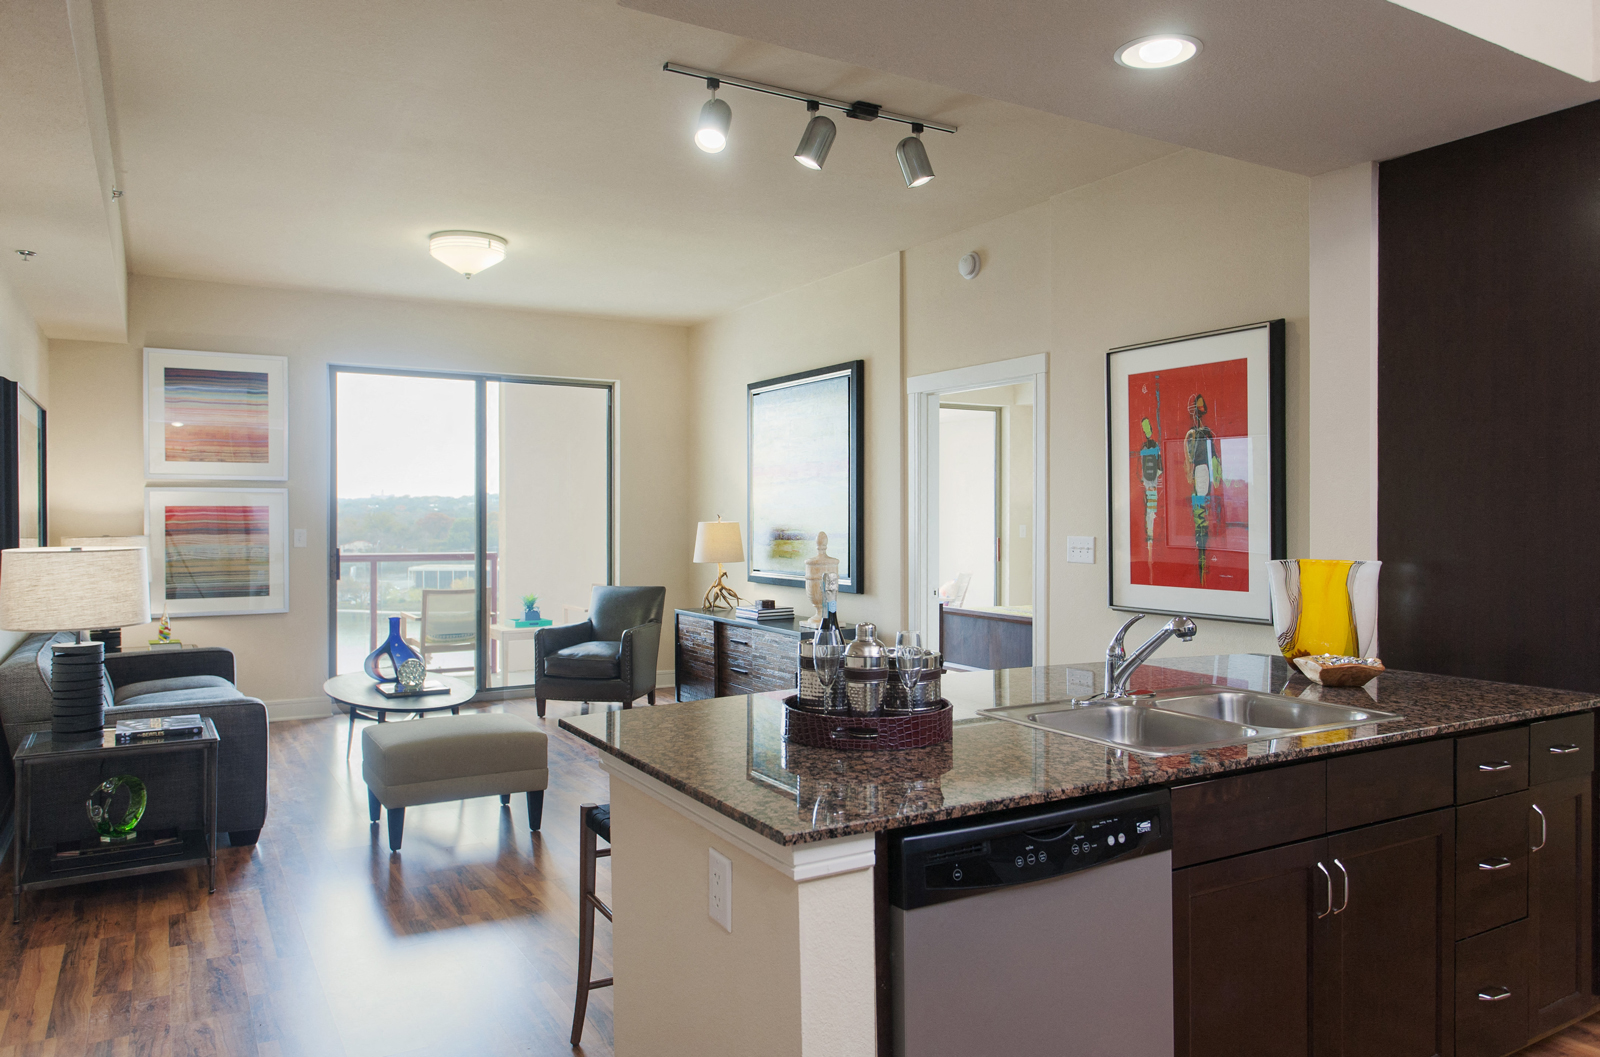 Gourmet Kitchens With Dishwasher And Disposal At Windsor On The Lake, Austin,  TX 78701